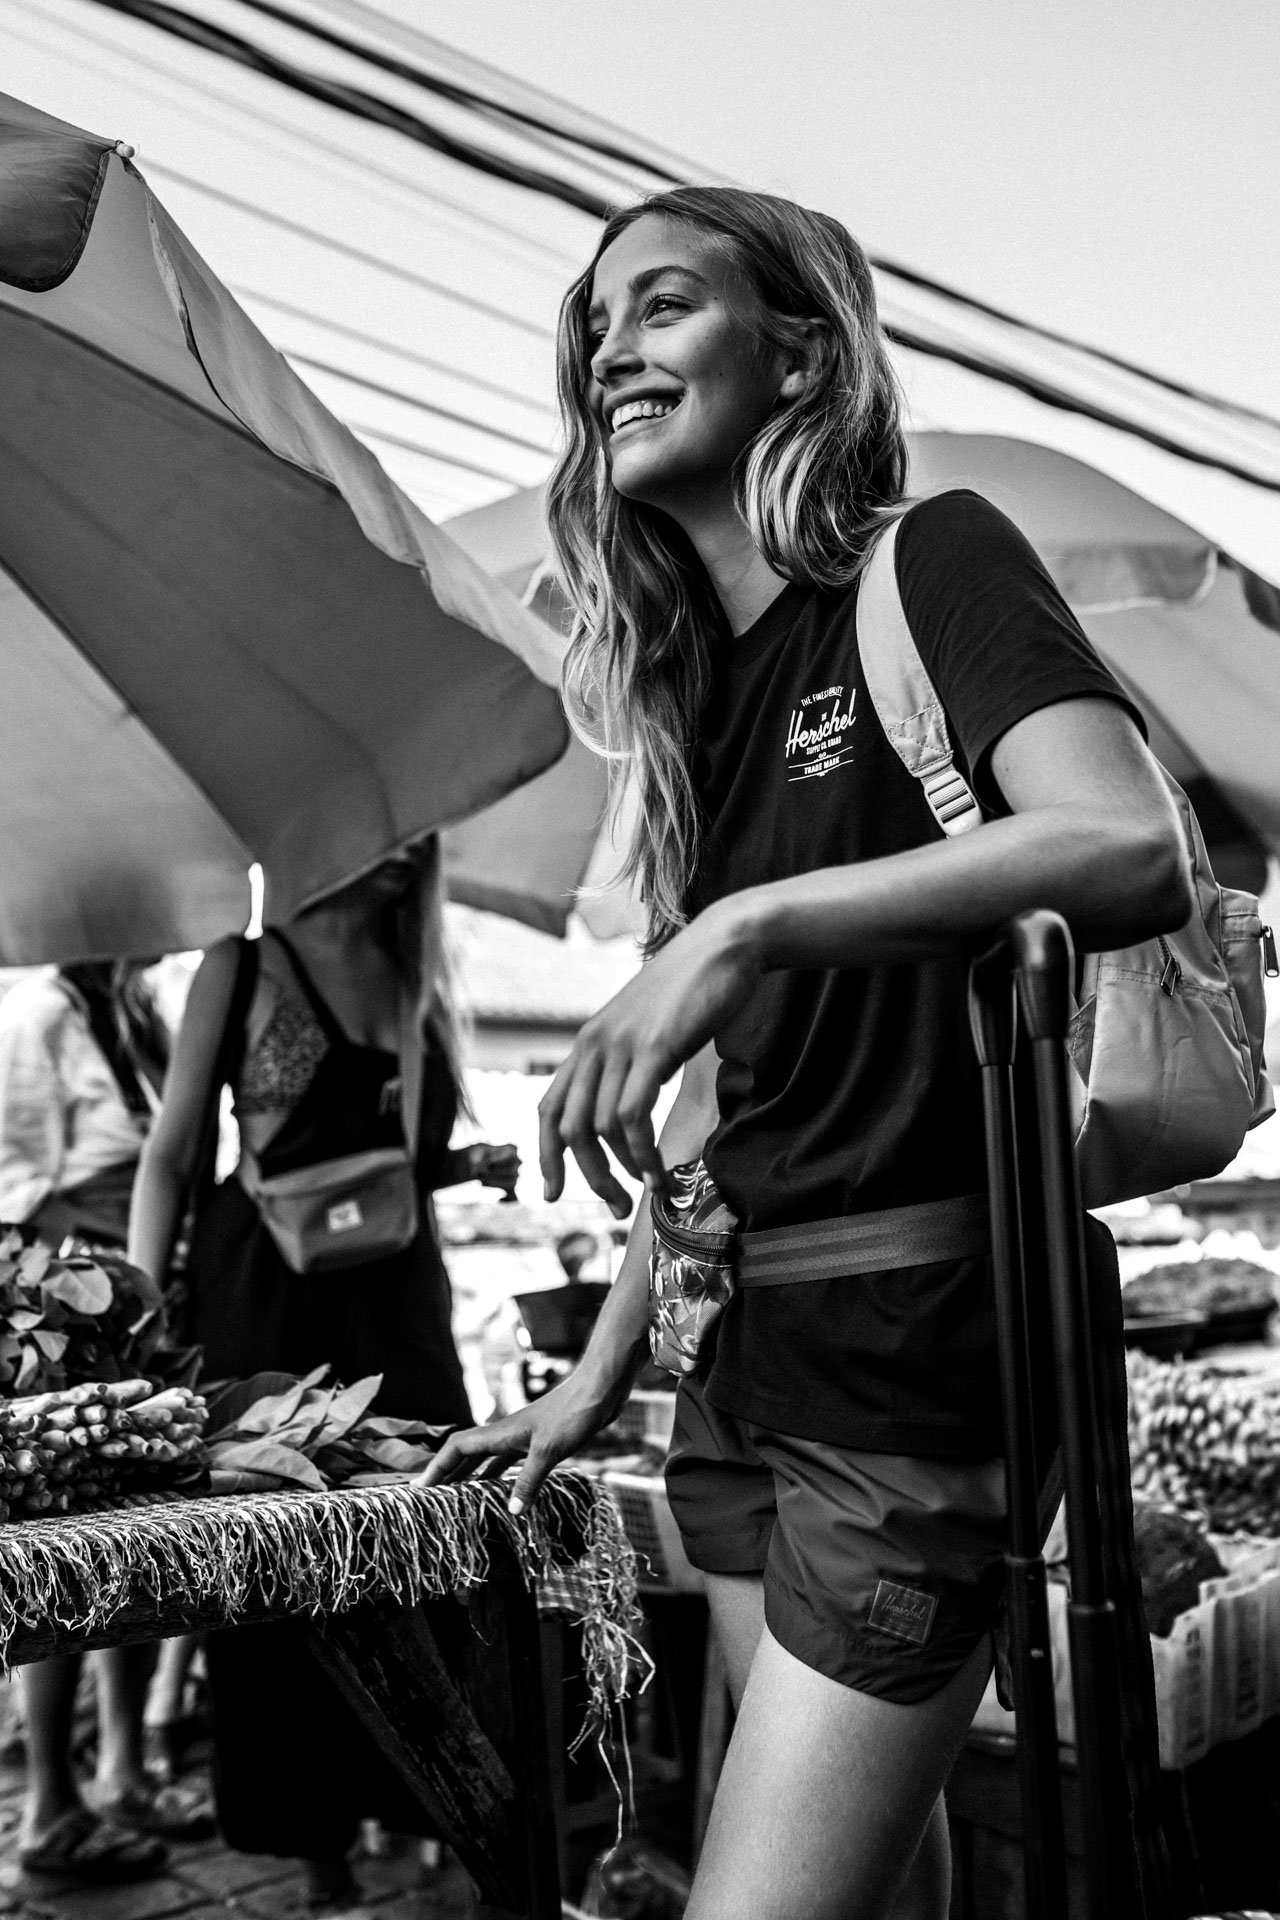 keira-mason-nordic-retreats-bali-markets-black-and-white.jpg